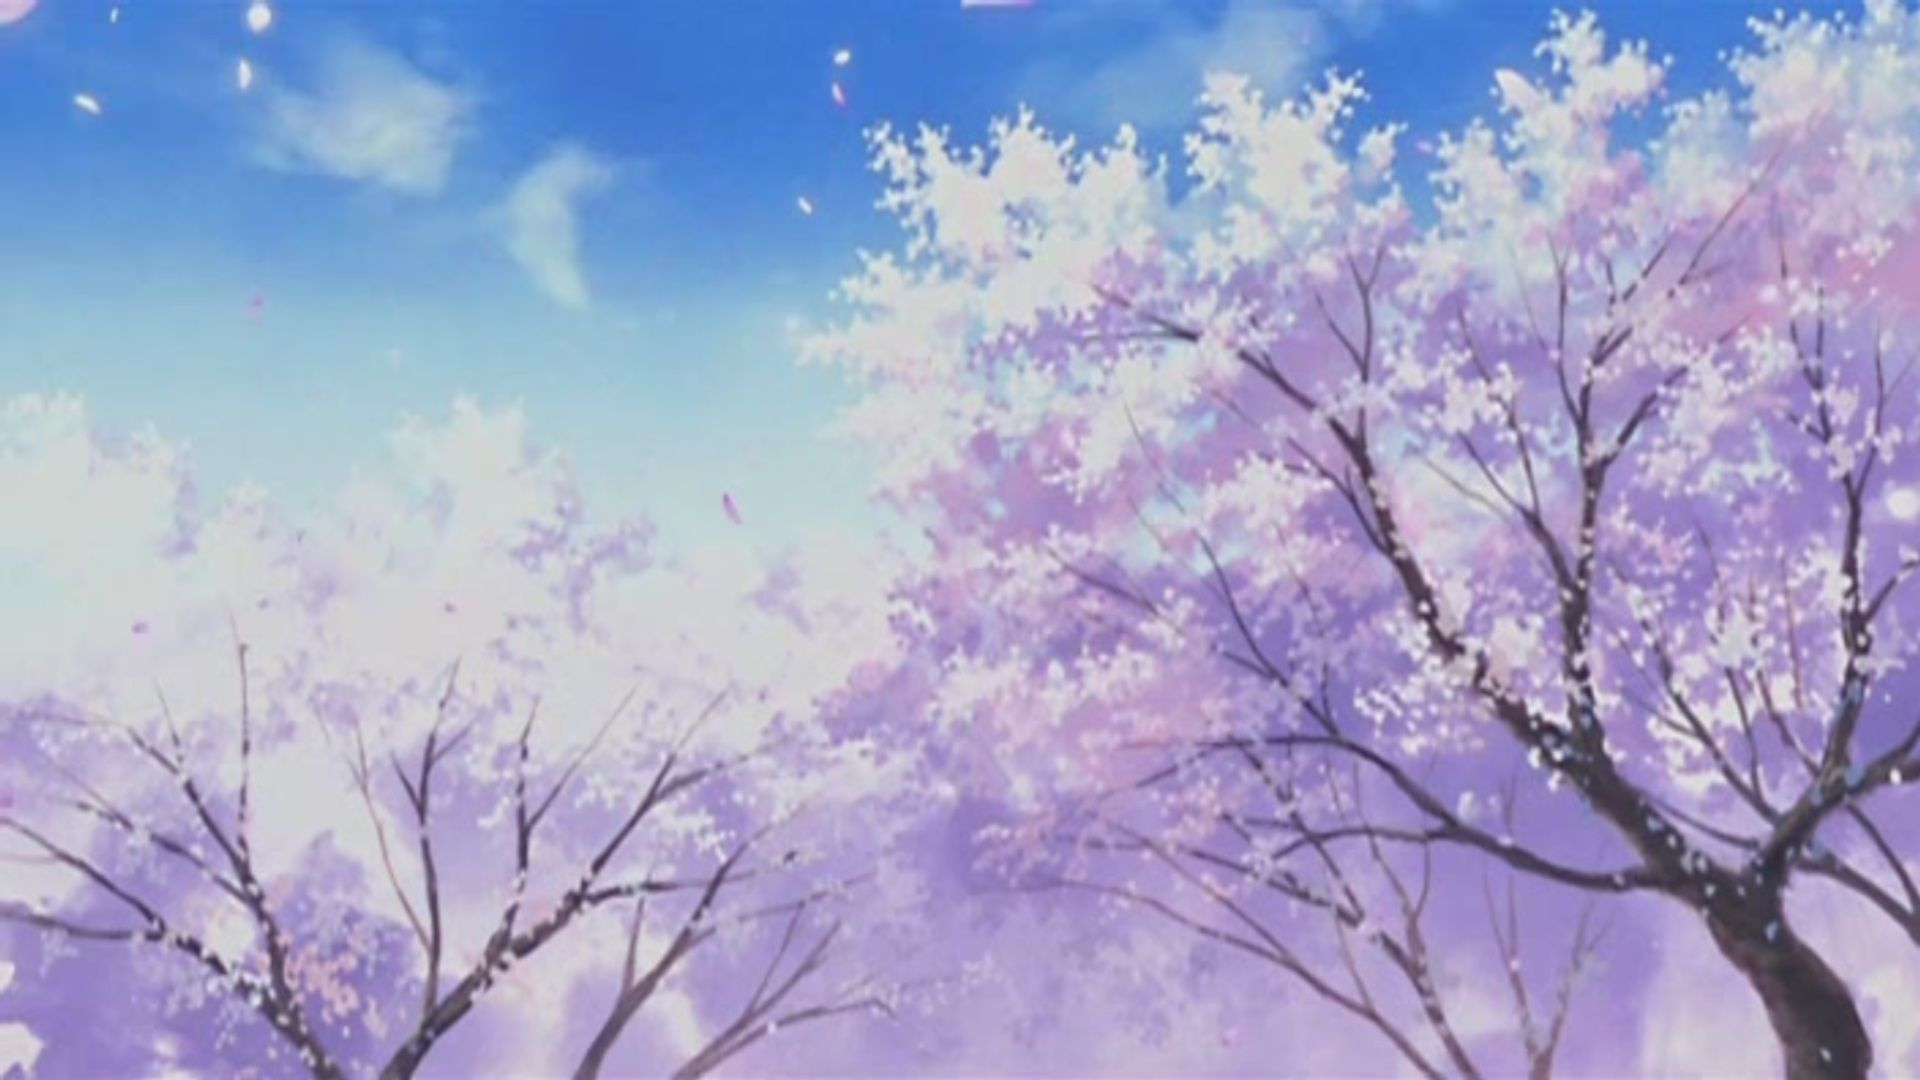 Cherry Blossom Anime Scenery Wallpaper Free Do 1512 Wallpaper Anime Cherry Blossom Anime Scenery Wallpaper Anime Scenery